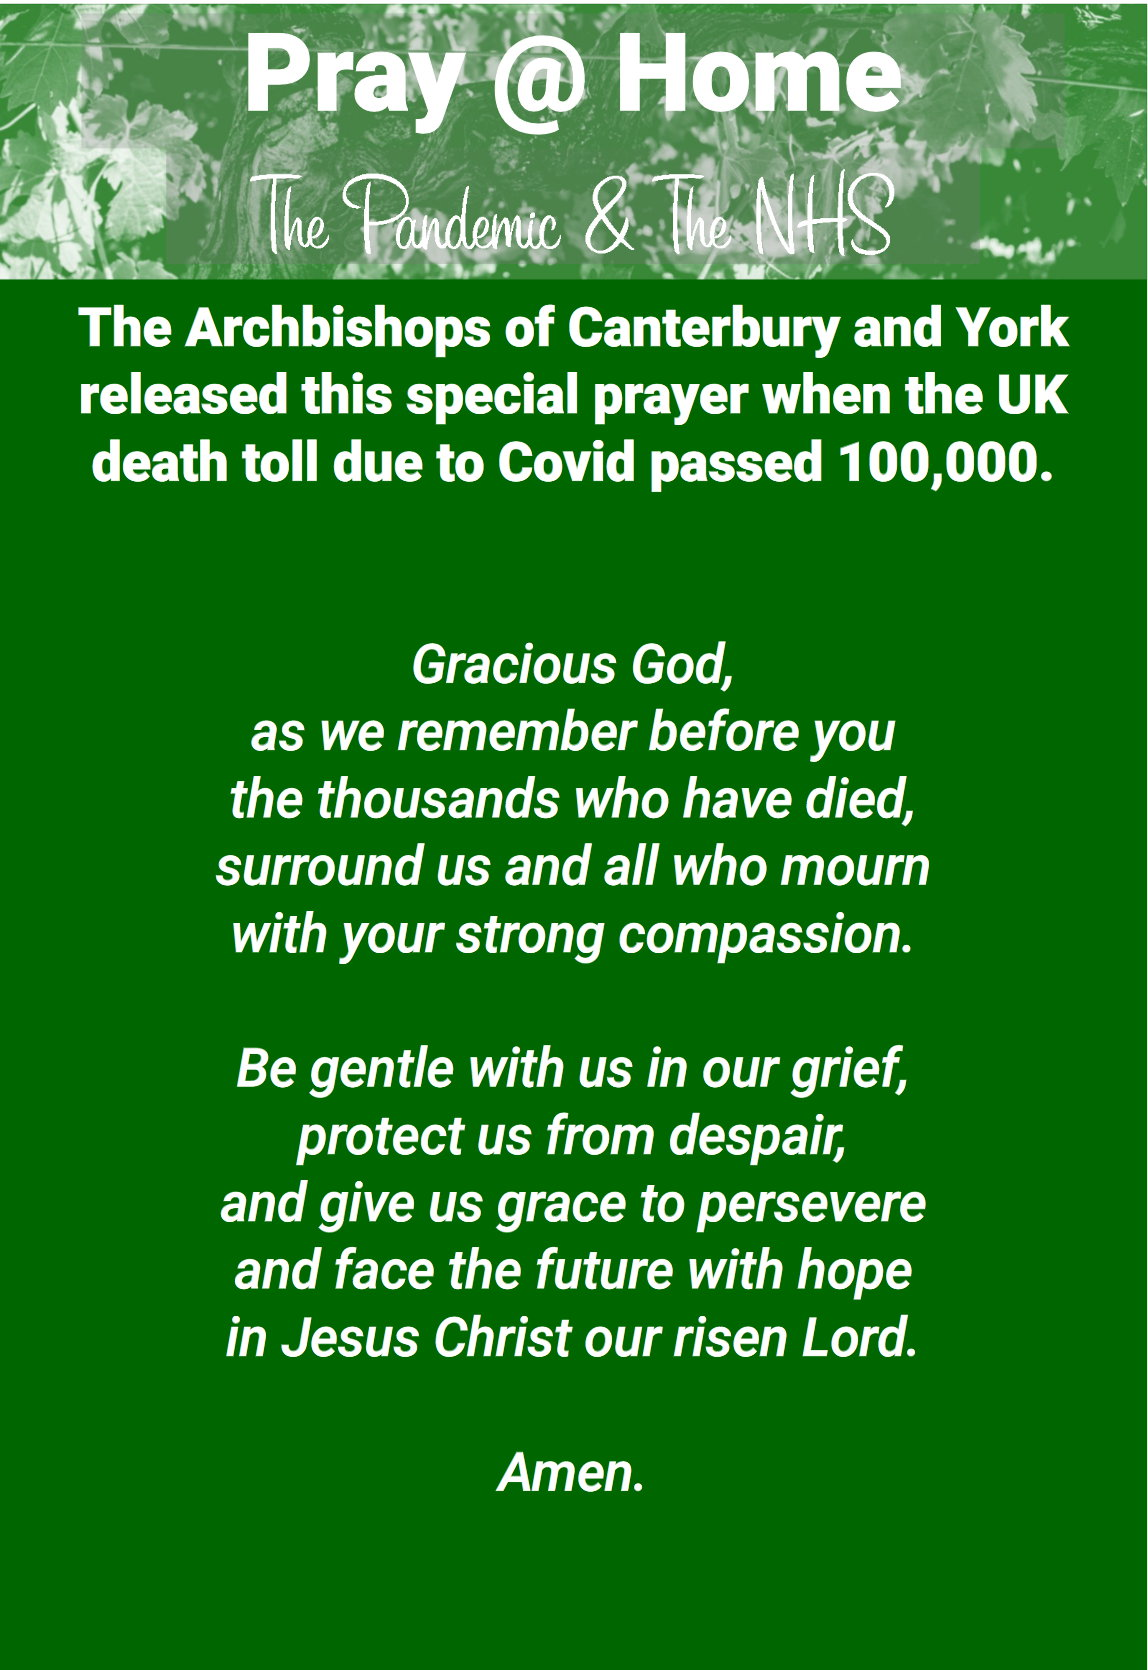 image with text of archbishops prayer